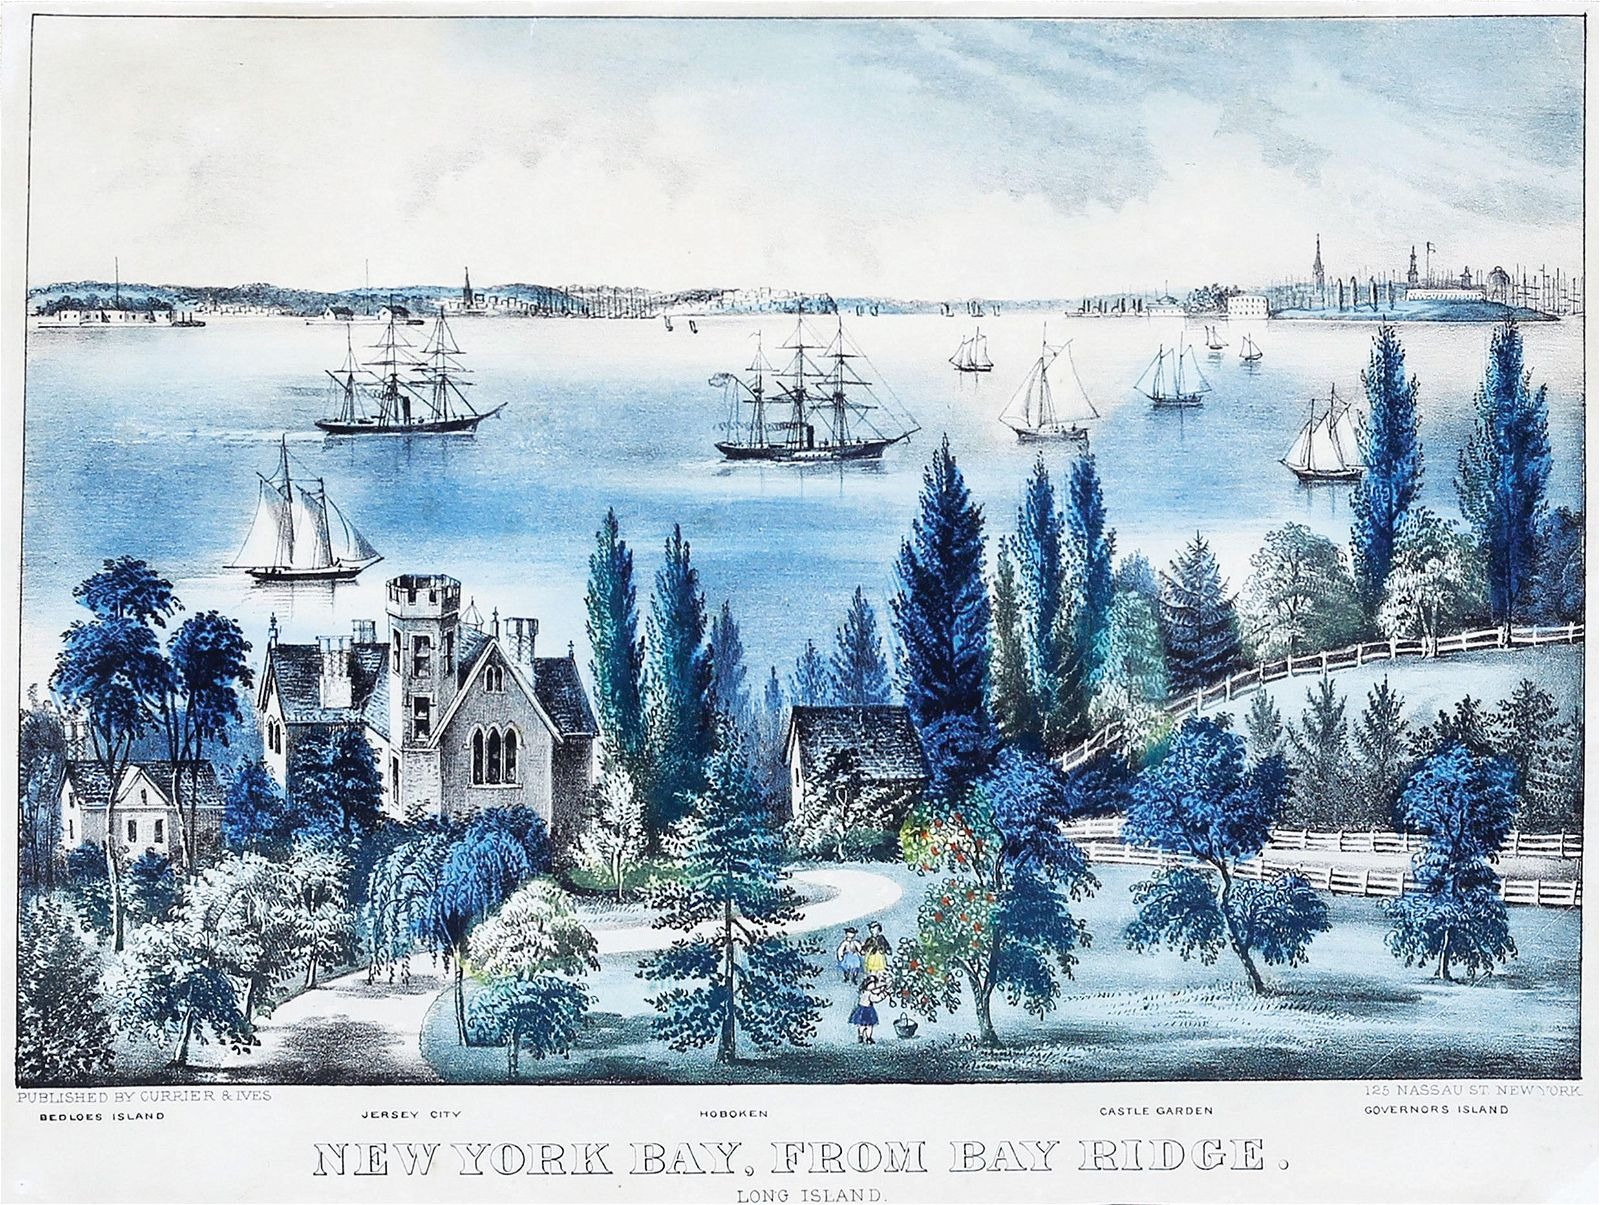 Currier & Ives, New York Bay from Bay Ridge